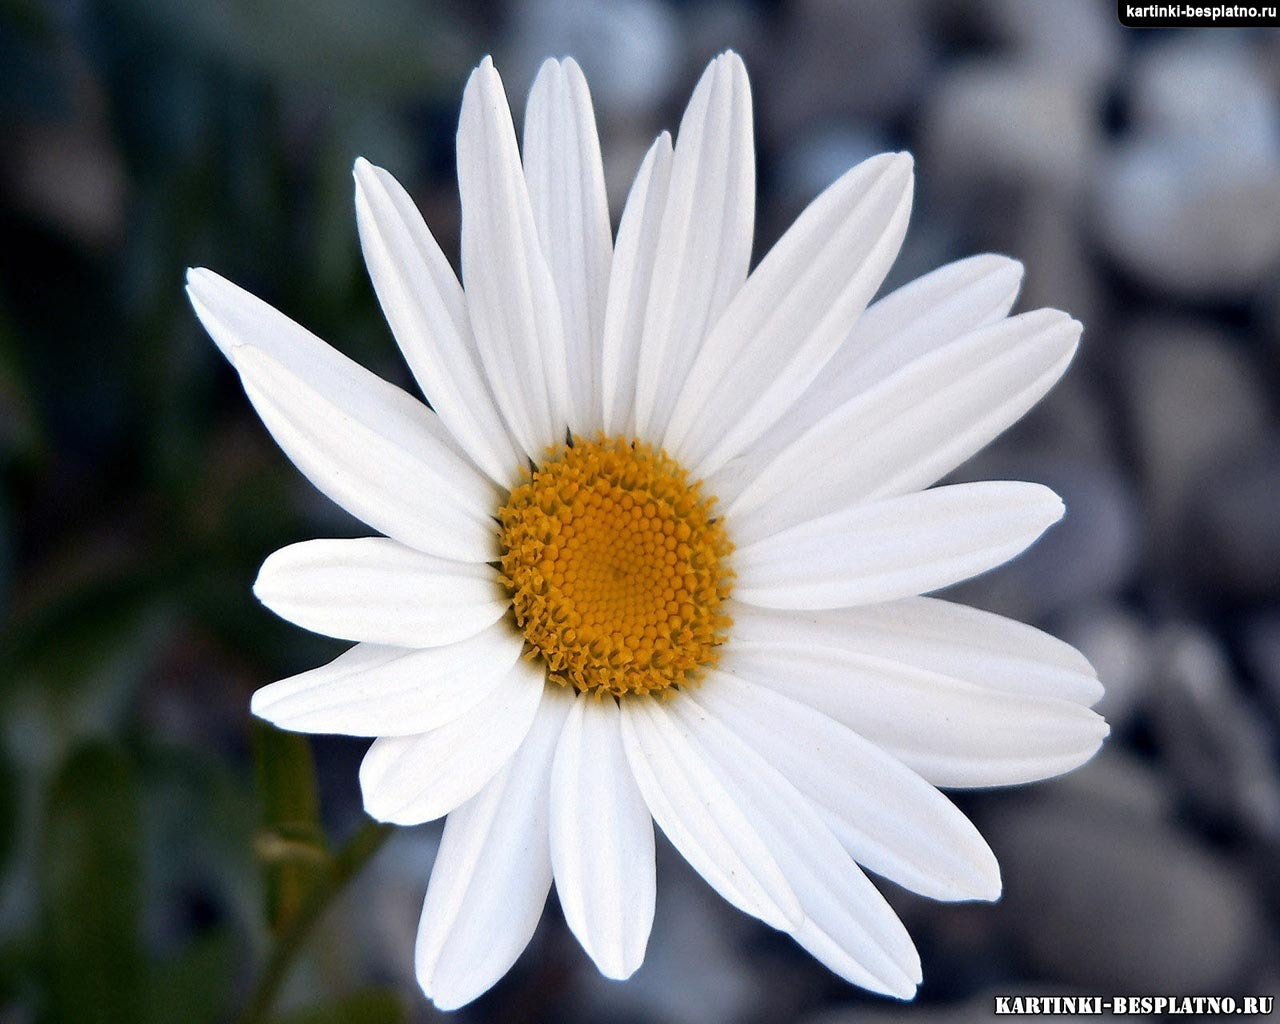 10685 download wallpaper Plants, Flowers, Camomile screensavers and pictures for free